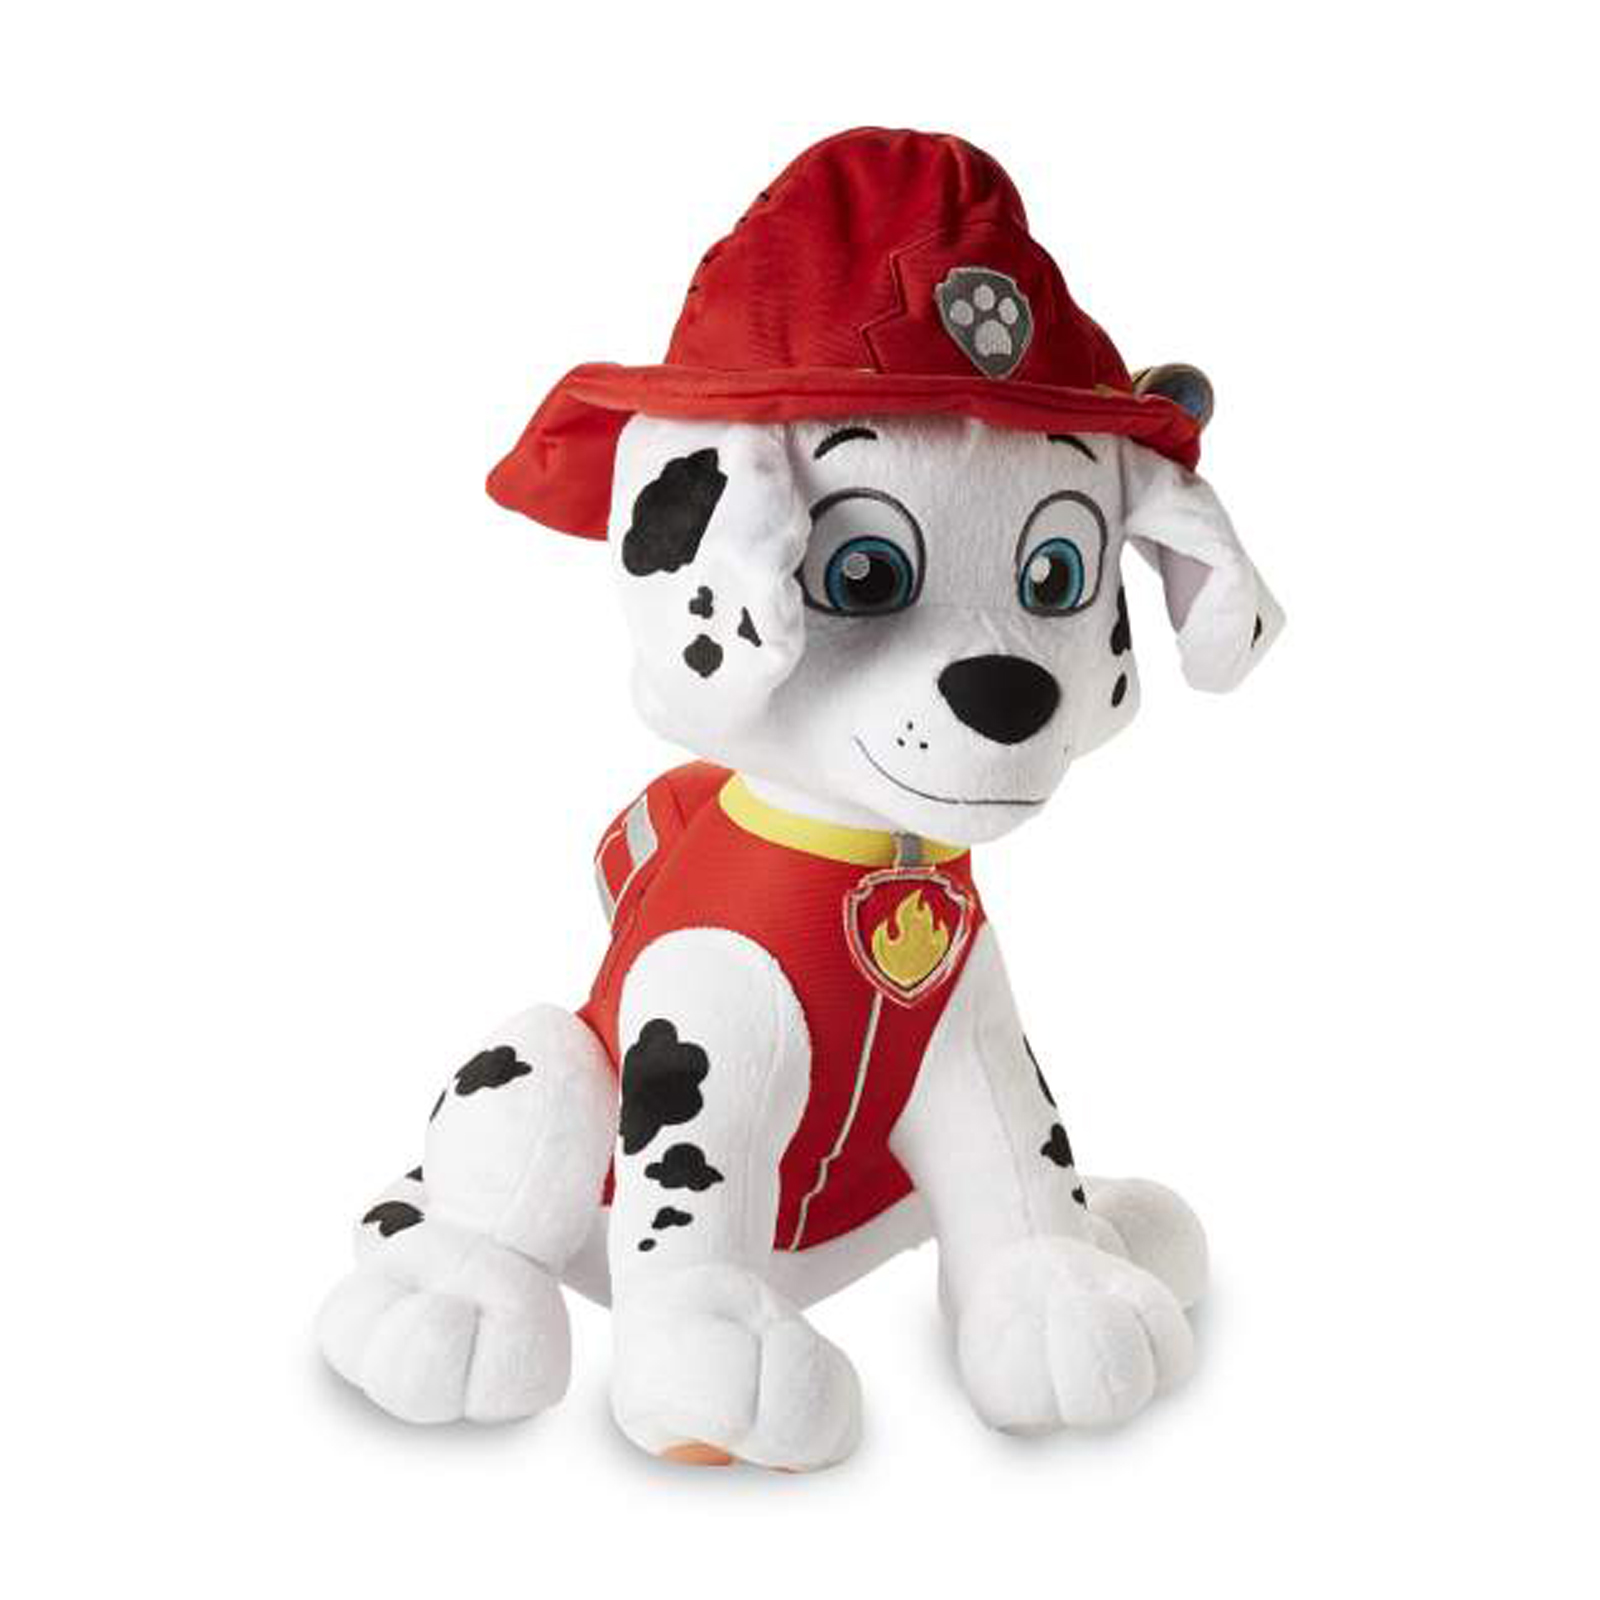 Image of Nickelodeon Cuddle Pillow - PAW Patrol Marshall